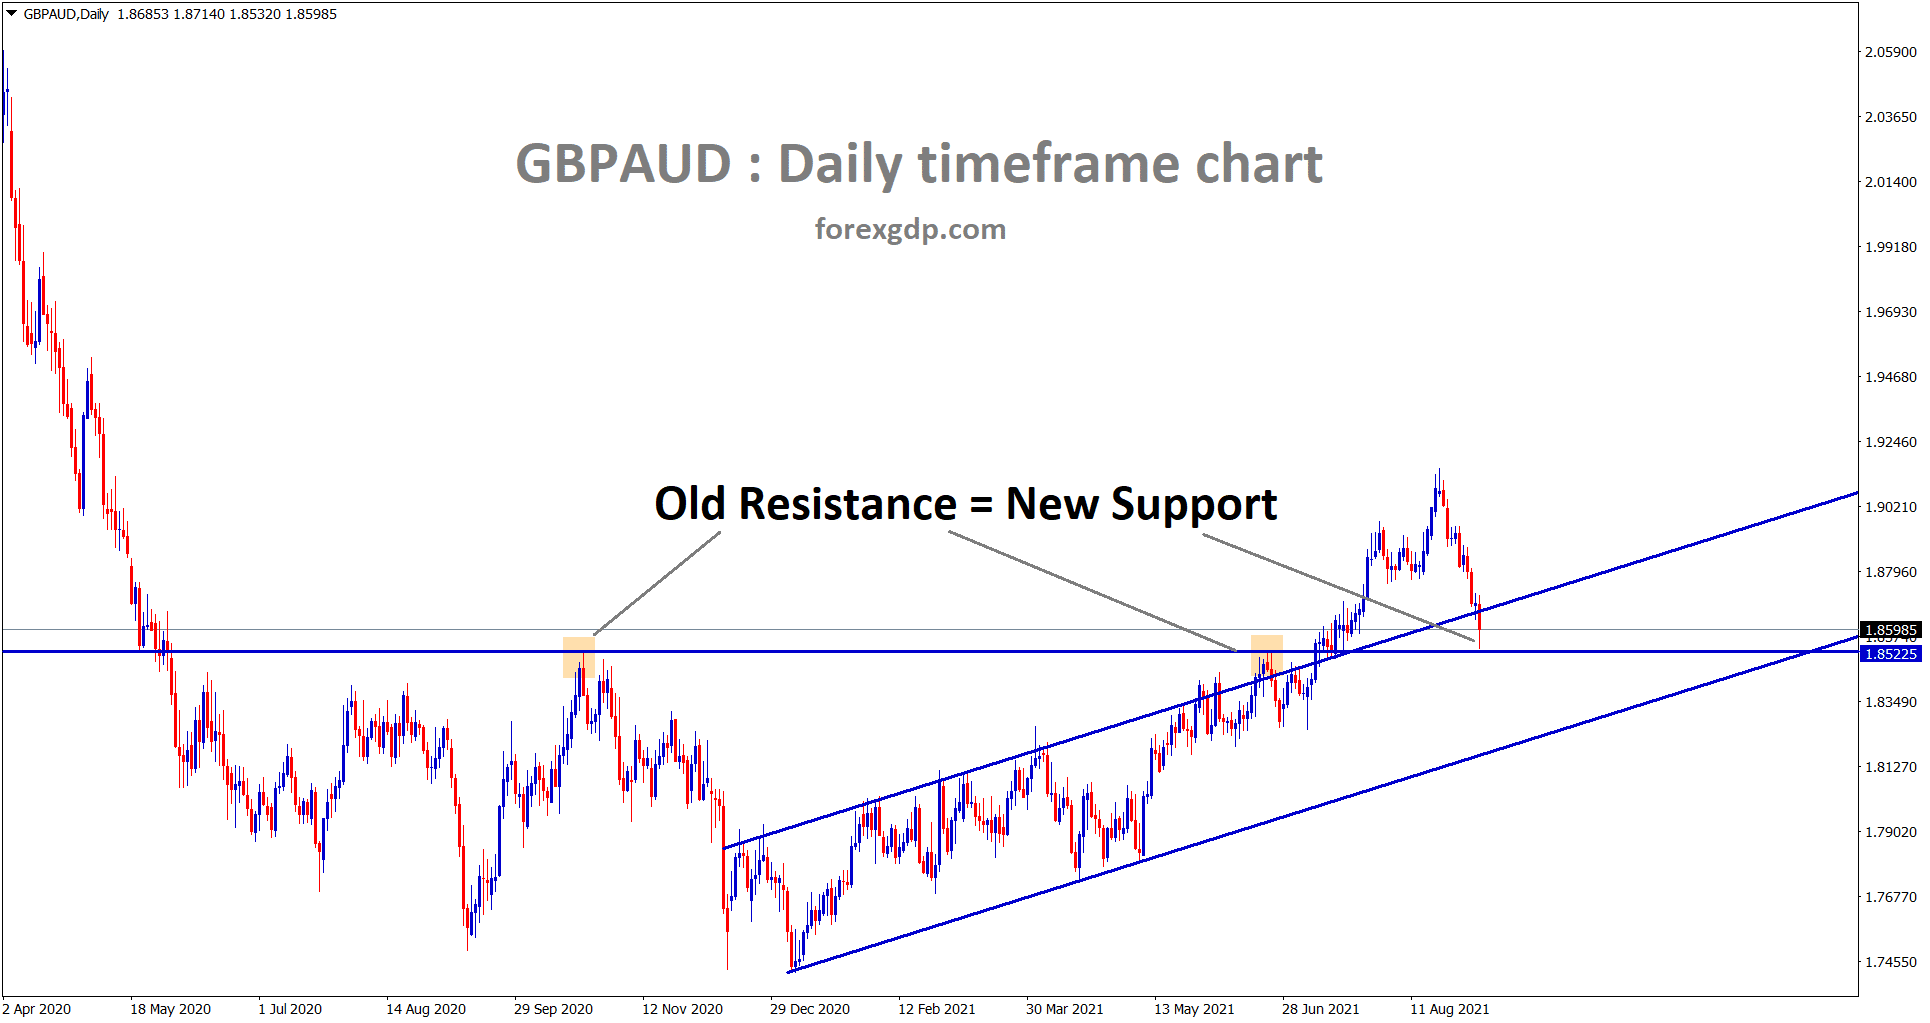 GBPAUD bounced back after retesting the old resistance level